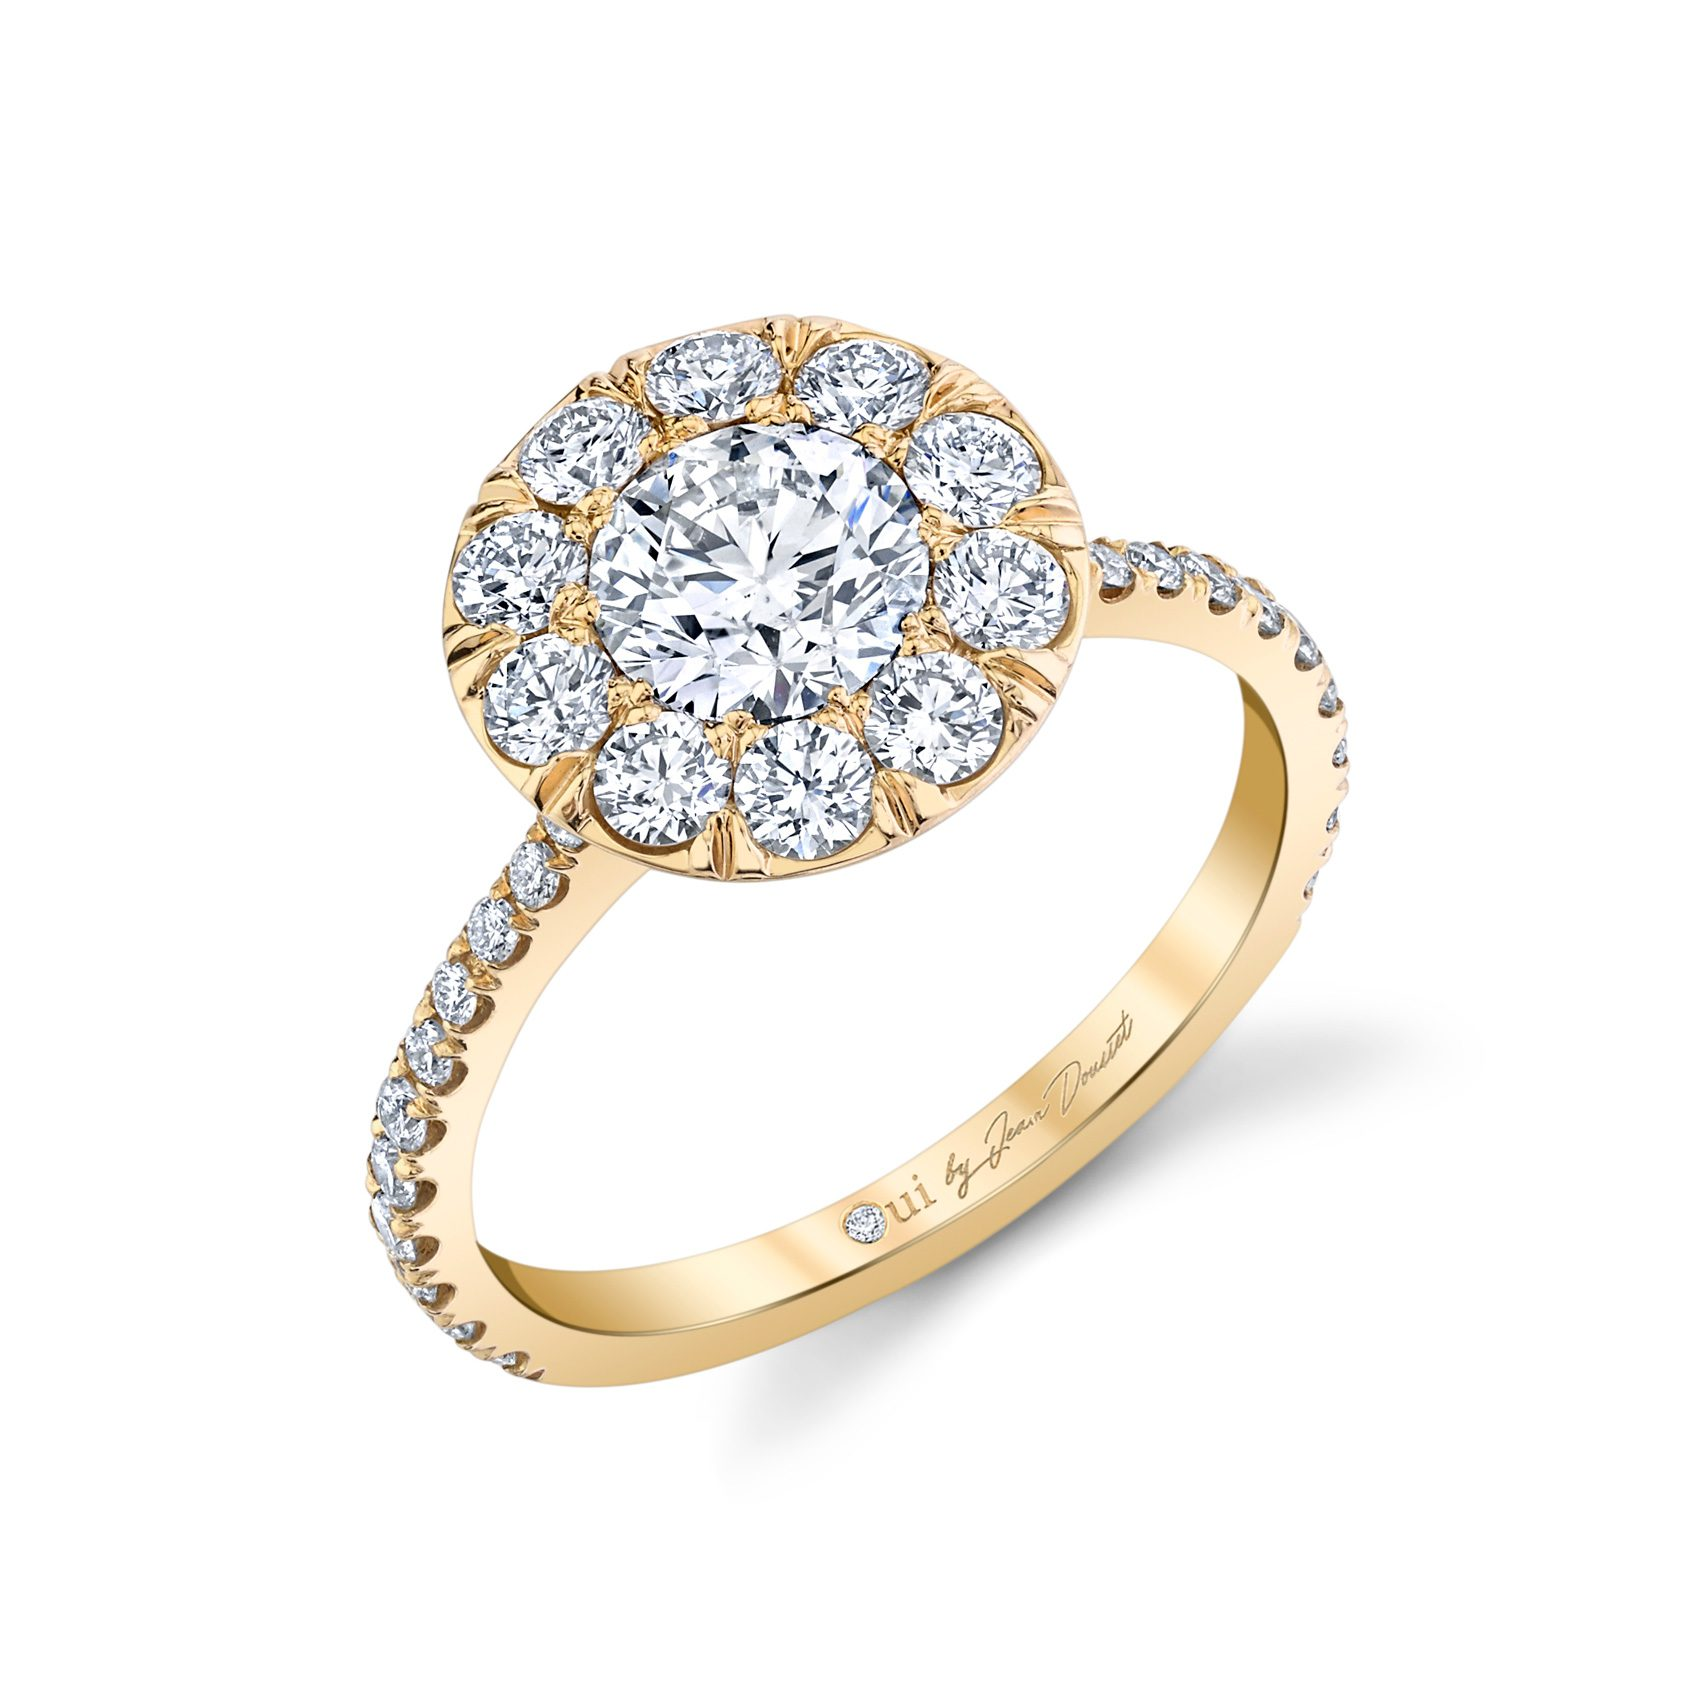 Eloise Round Brilliant Seamless Solitaire® Engagement Ring with diamond pavé in 18k Yellow Gold Profile View by Oui by Jean Dousset